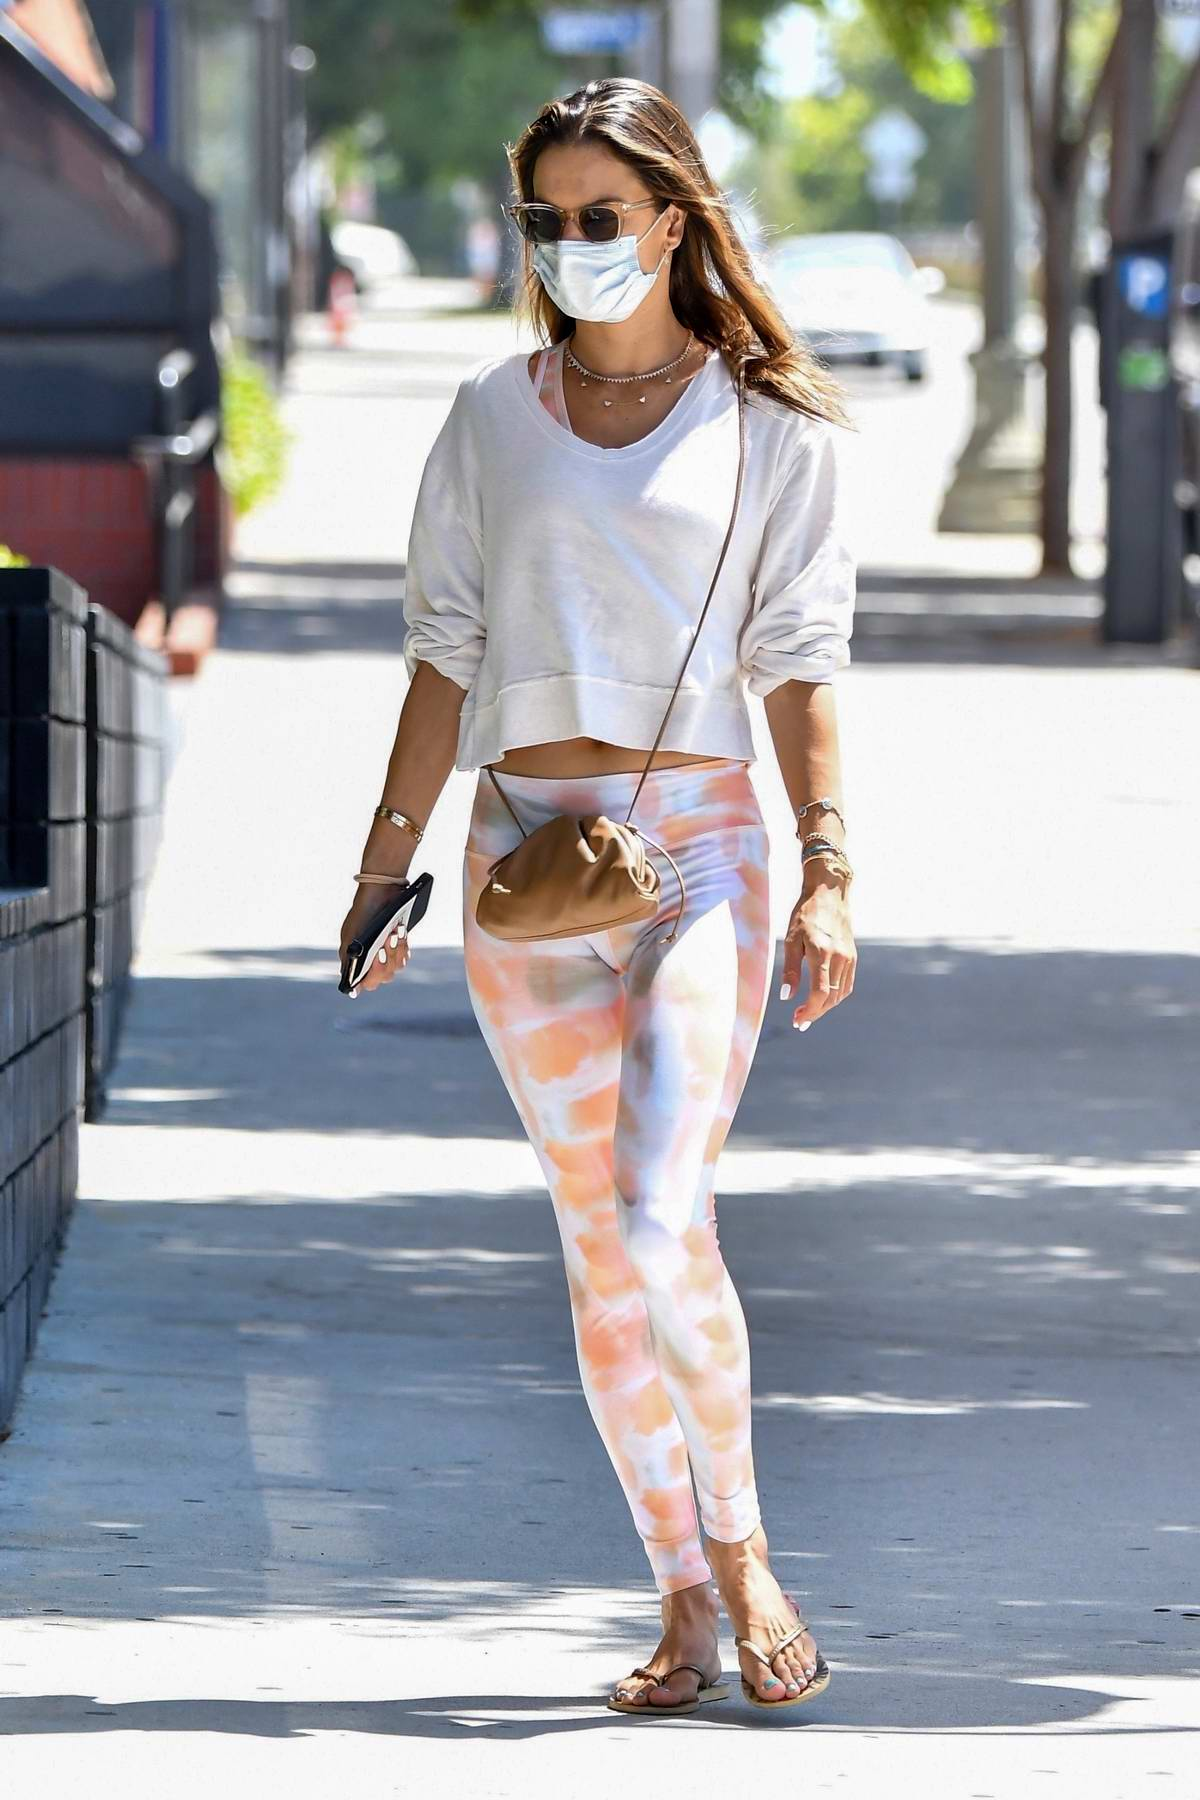 Alessandra Ambrosio sports a white sweatshirt and leggings as she hits the gym in Santa Monica, California